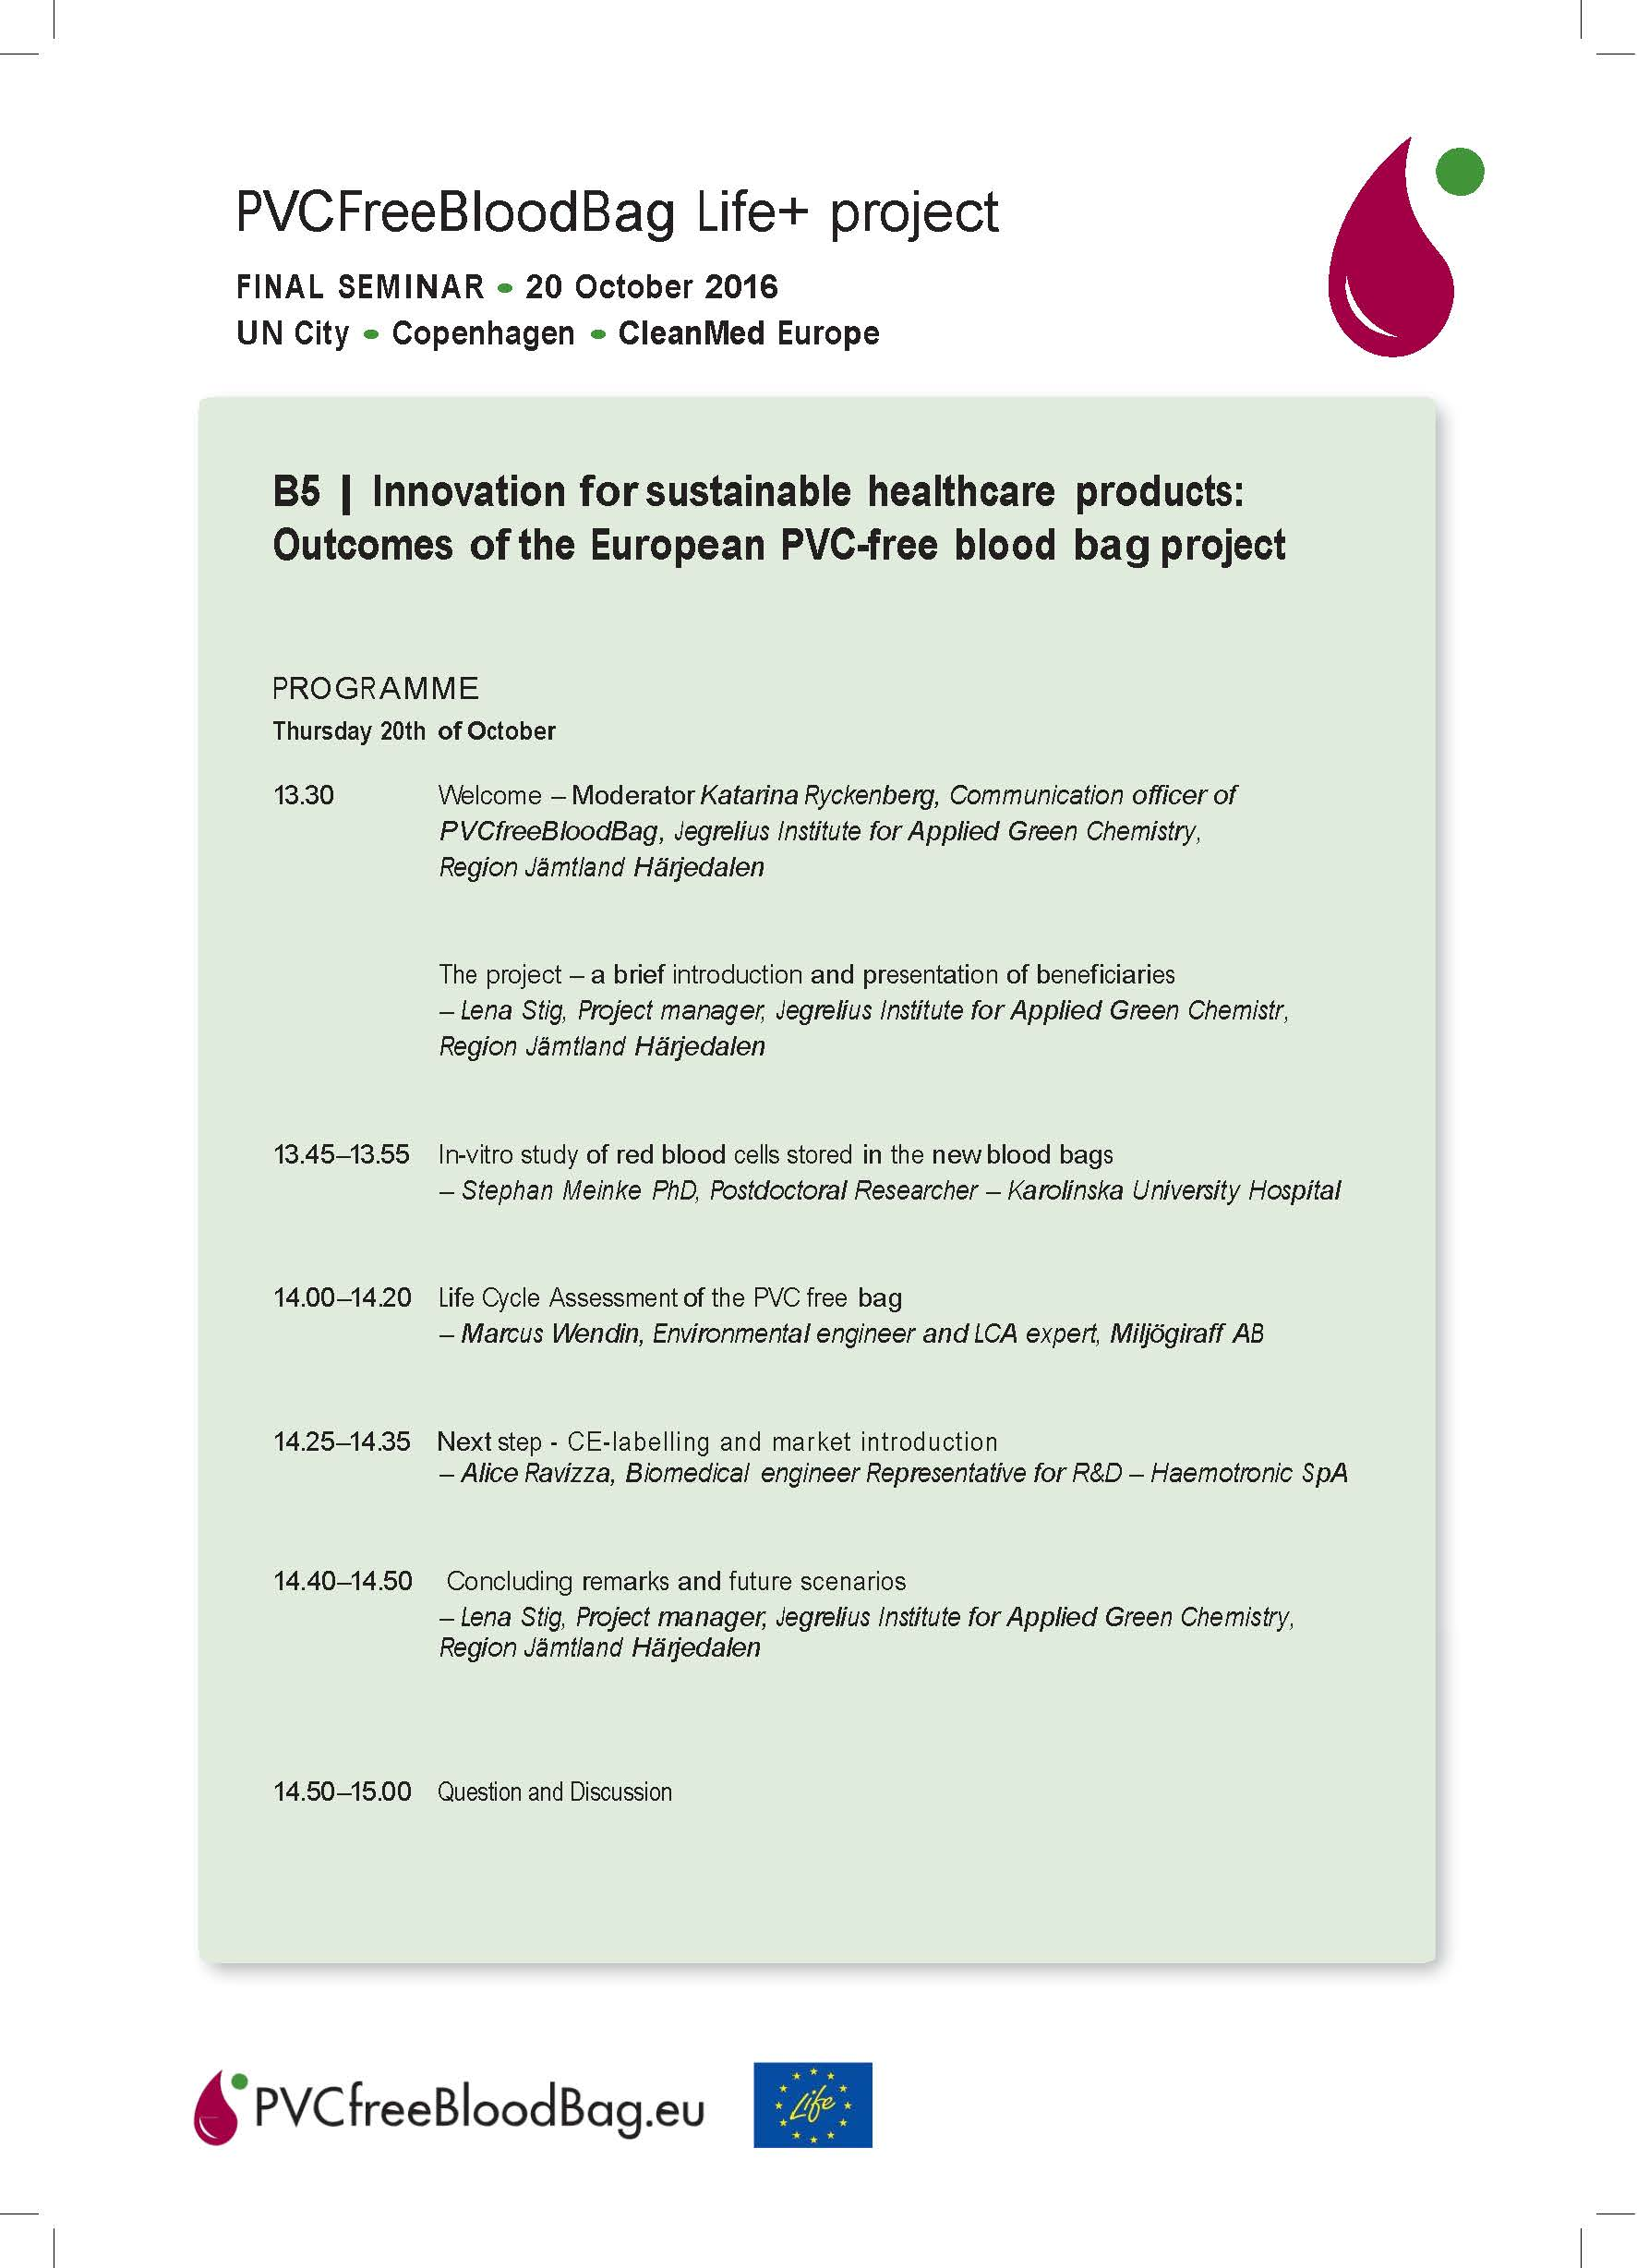 Program and Speakers list – Final Seminar – Copenhagen 20